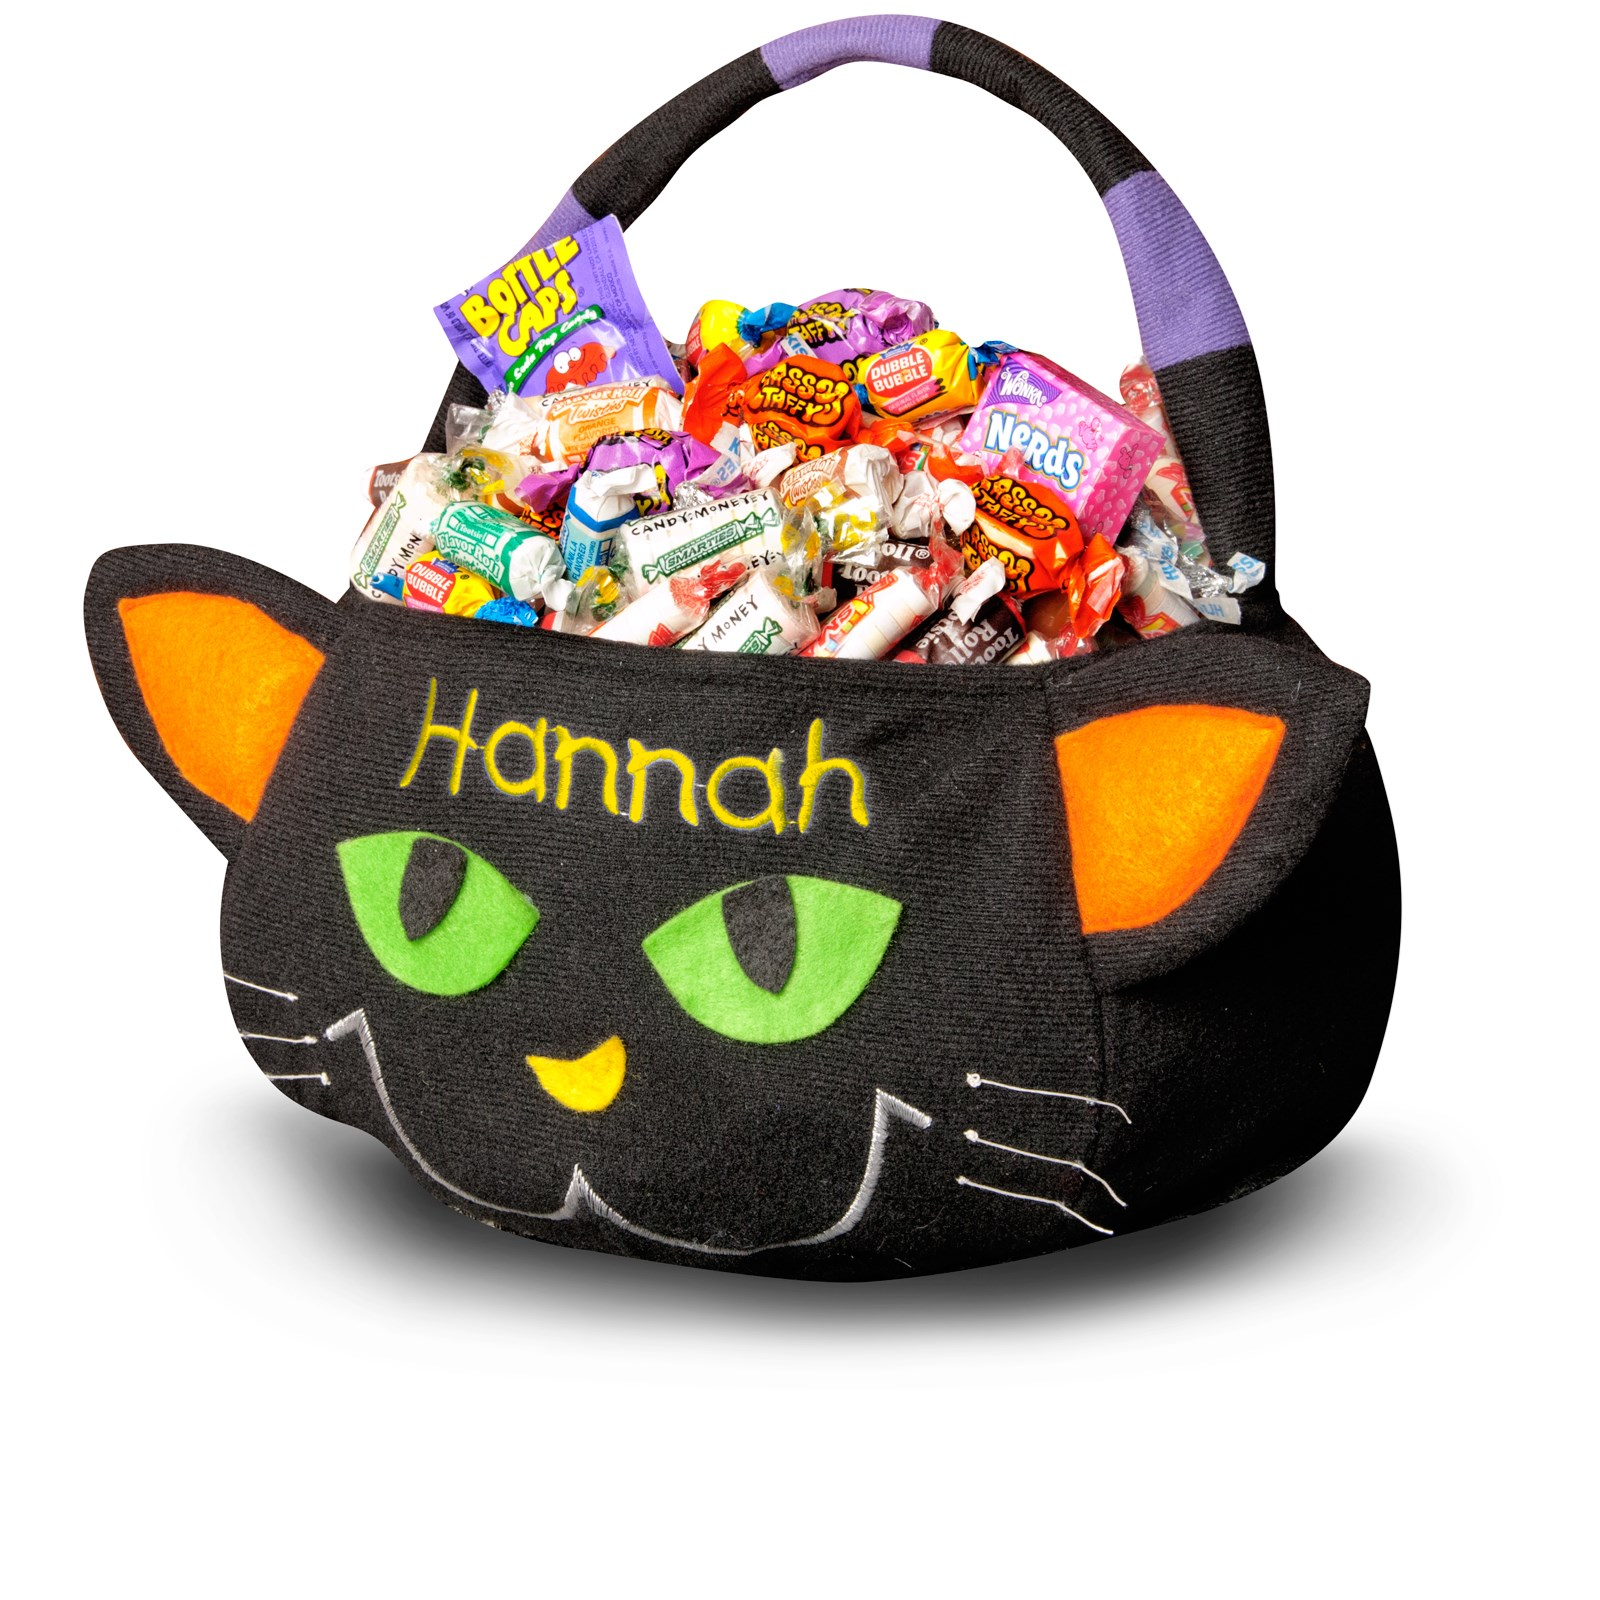 Personalized Treat Pails at Bu...